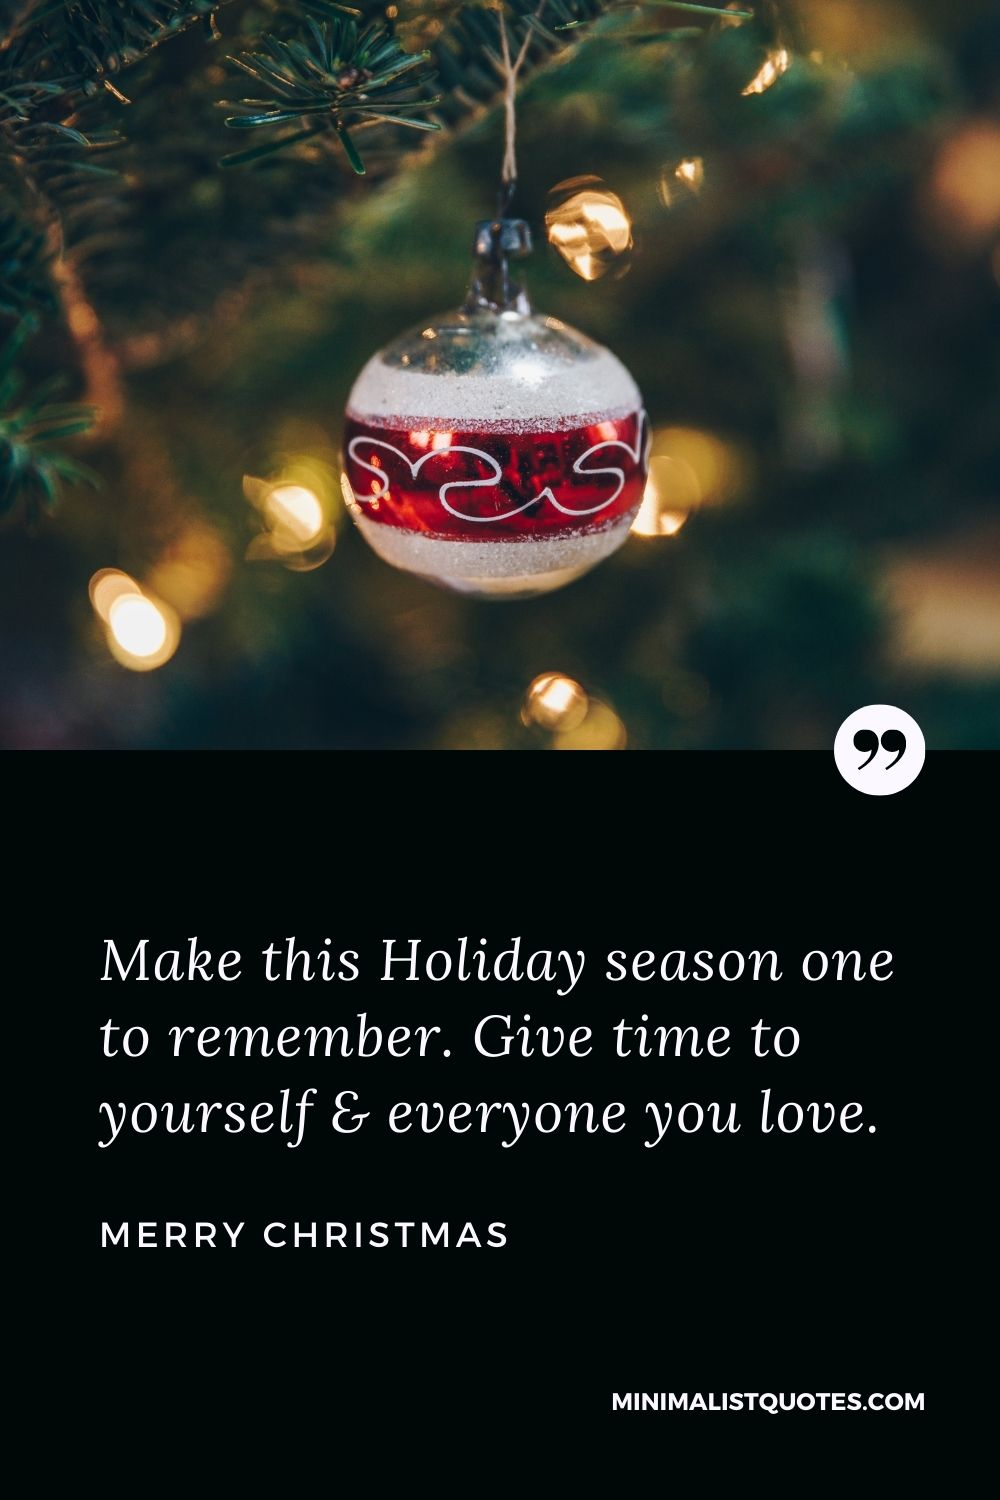 Merry Christmas Wish - Make this Holiday season one to remember. Give time to yourself & everyone you love.